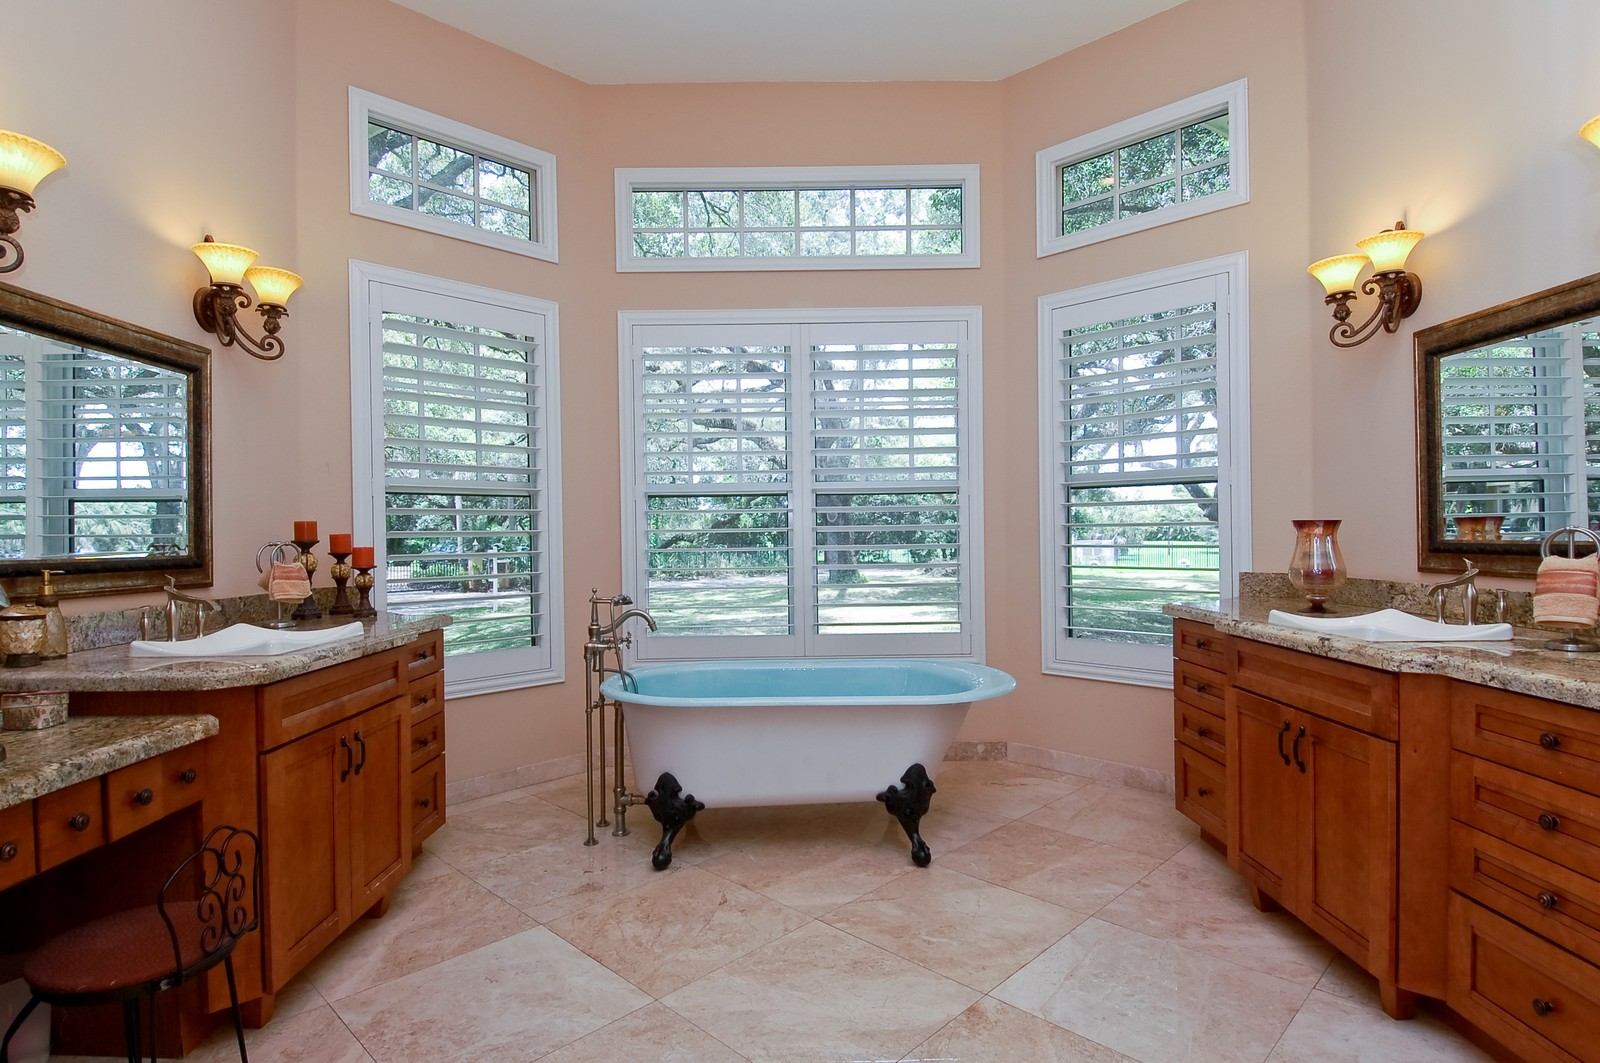 Real Estate Photography - 5400 Woodlanden Ln, Ft Lauderdale, FL, 33021 - Master Bathroom